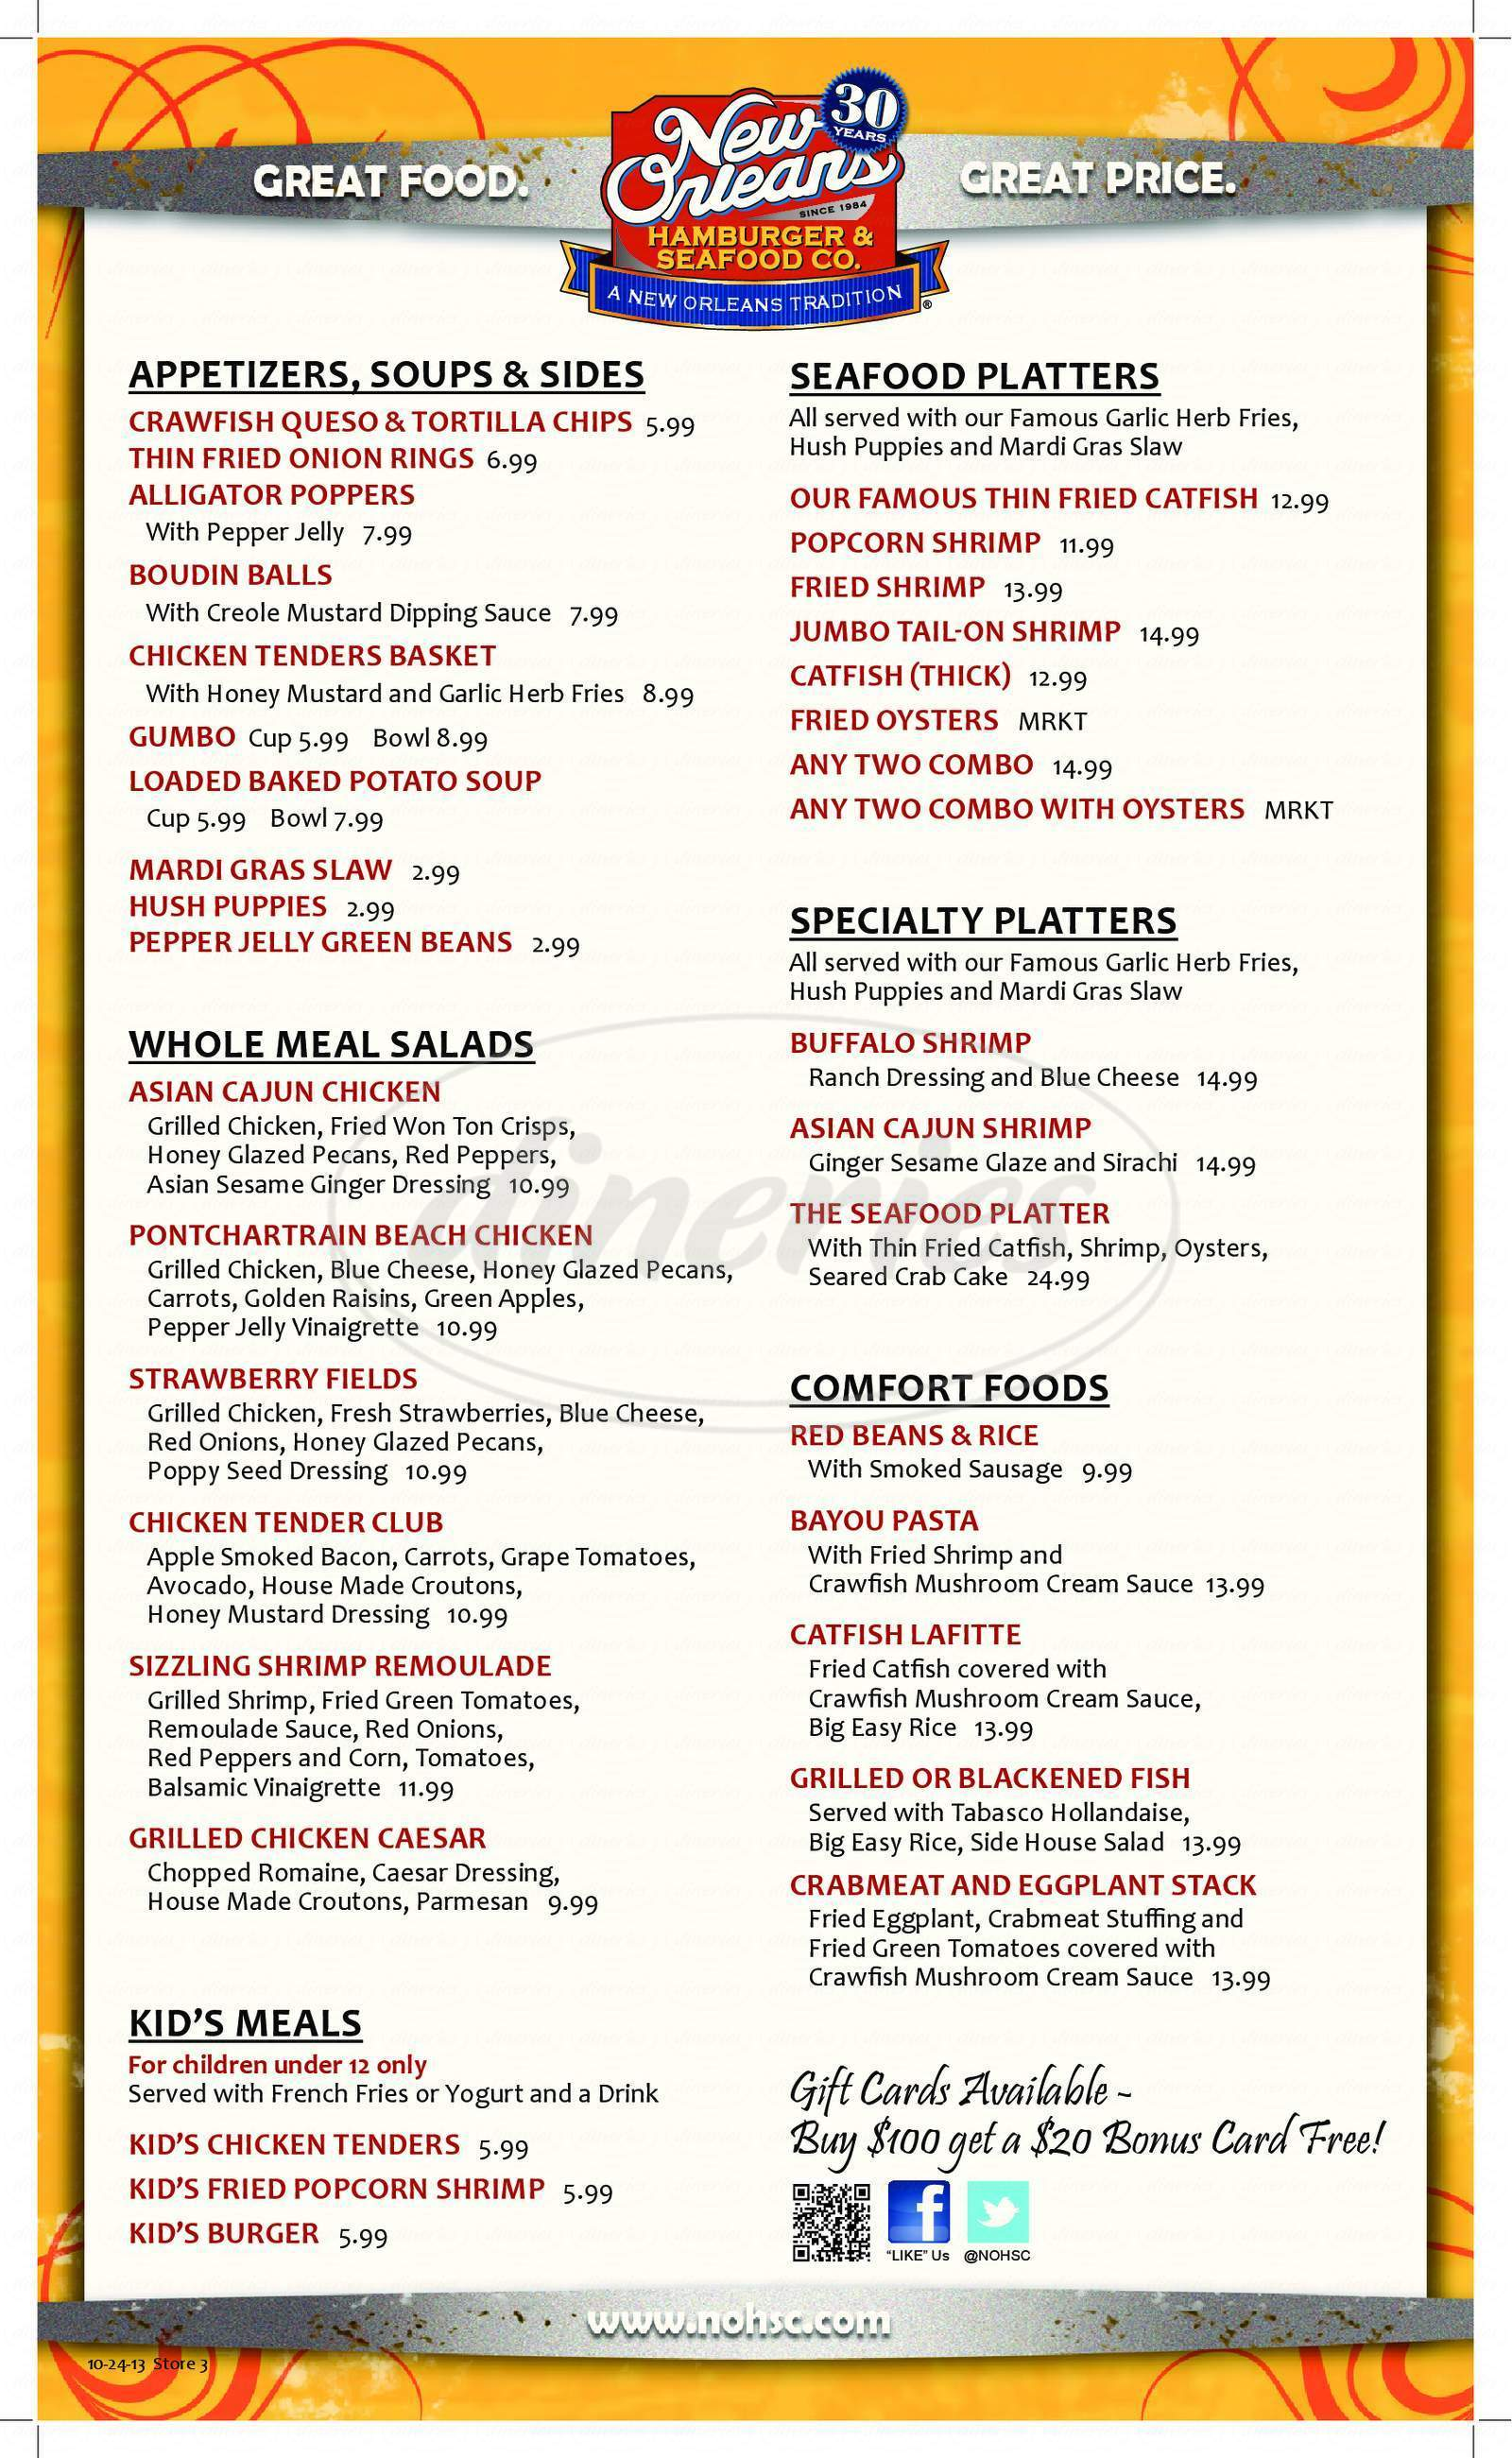 menu for New Orleans Hamburger & Seafood Co.